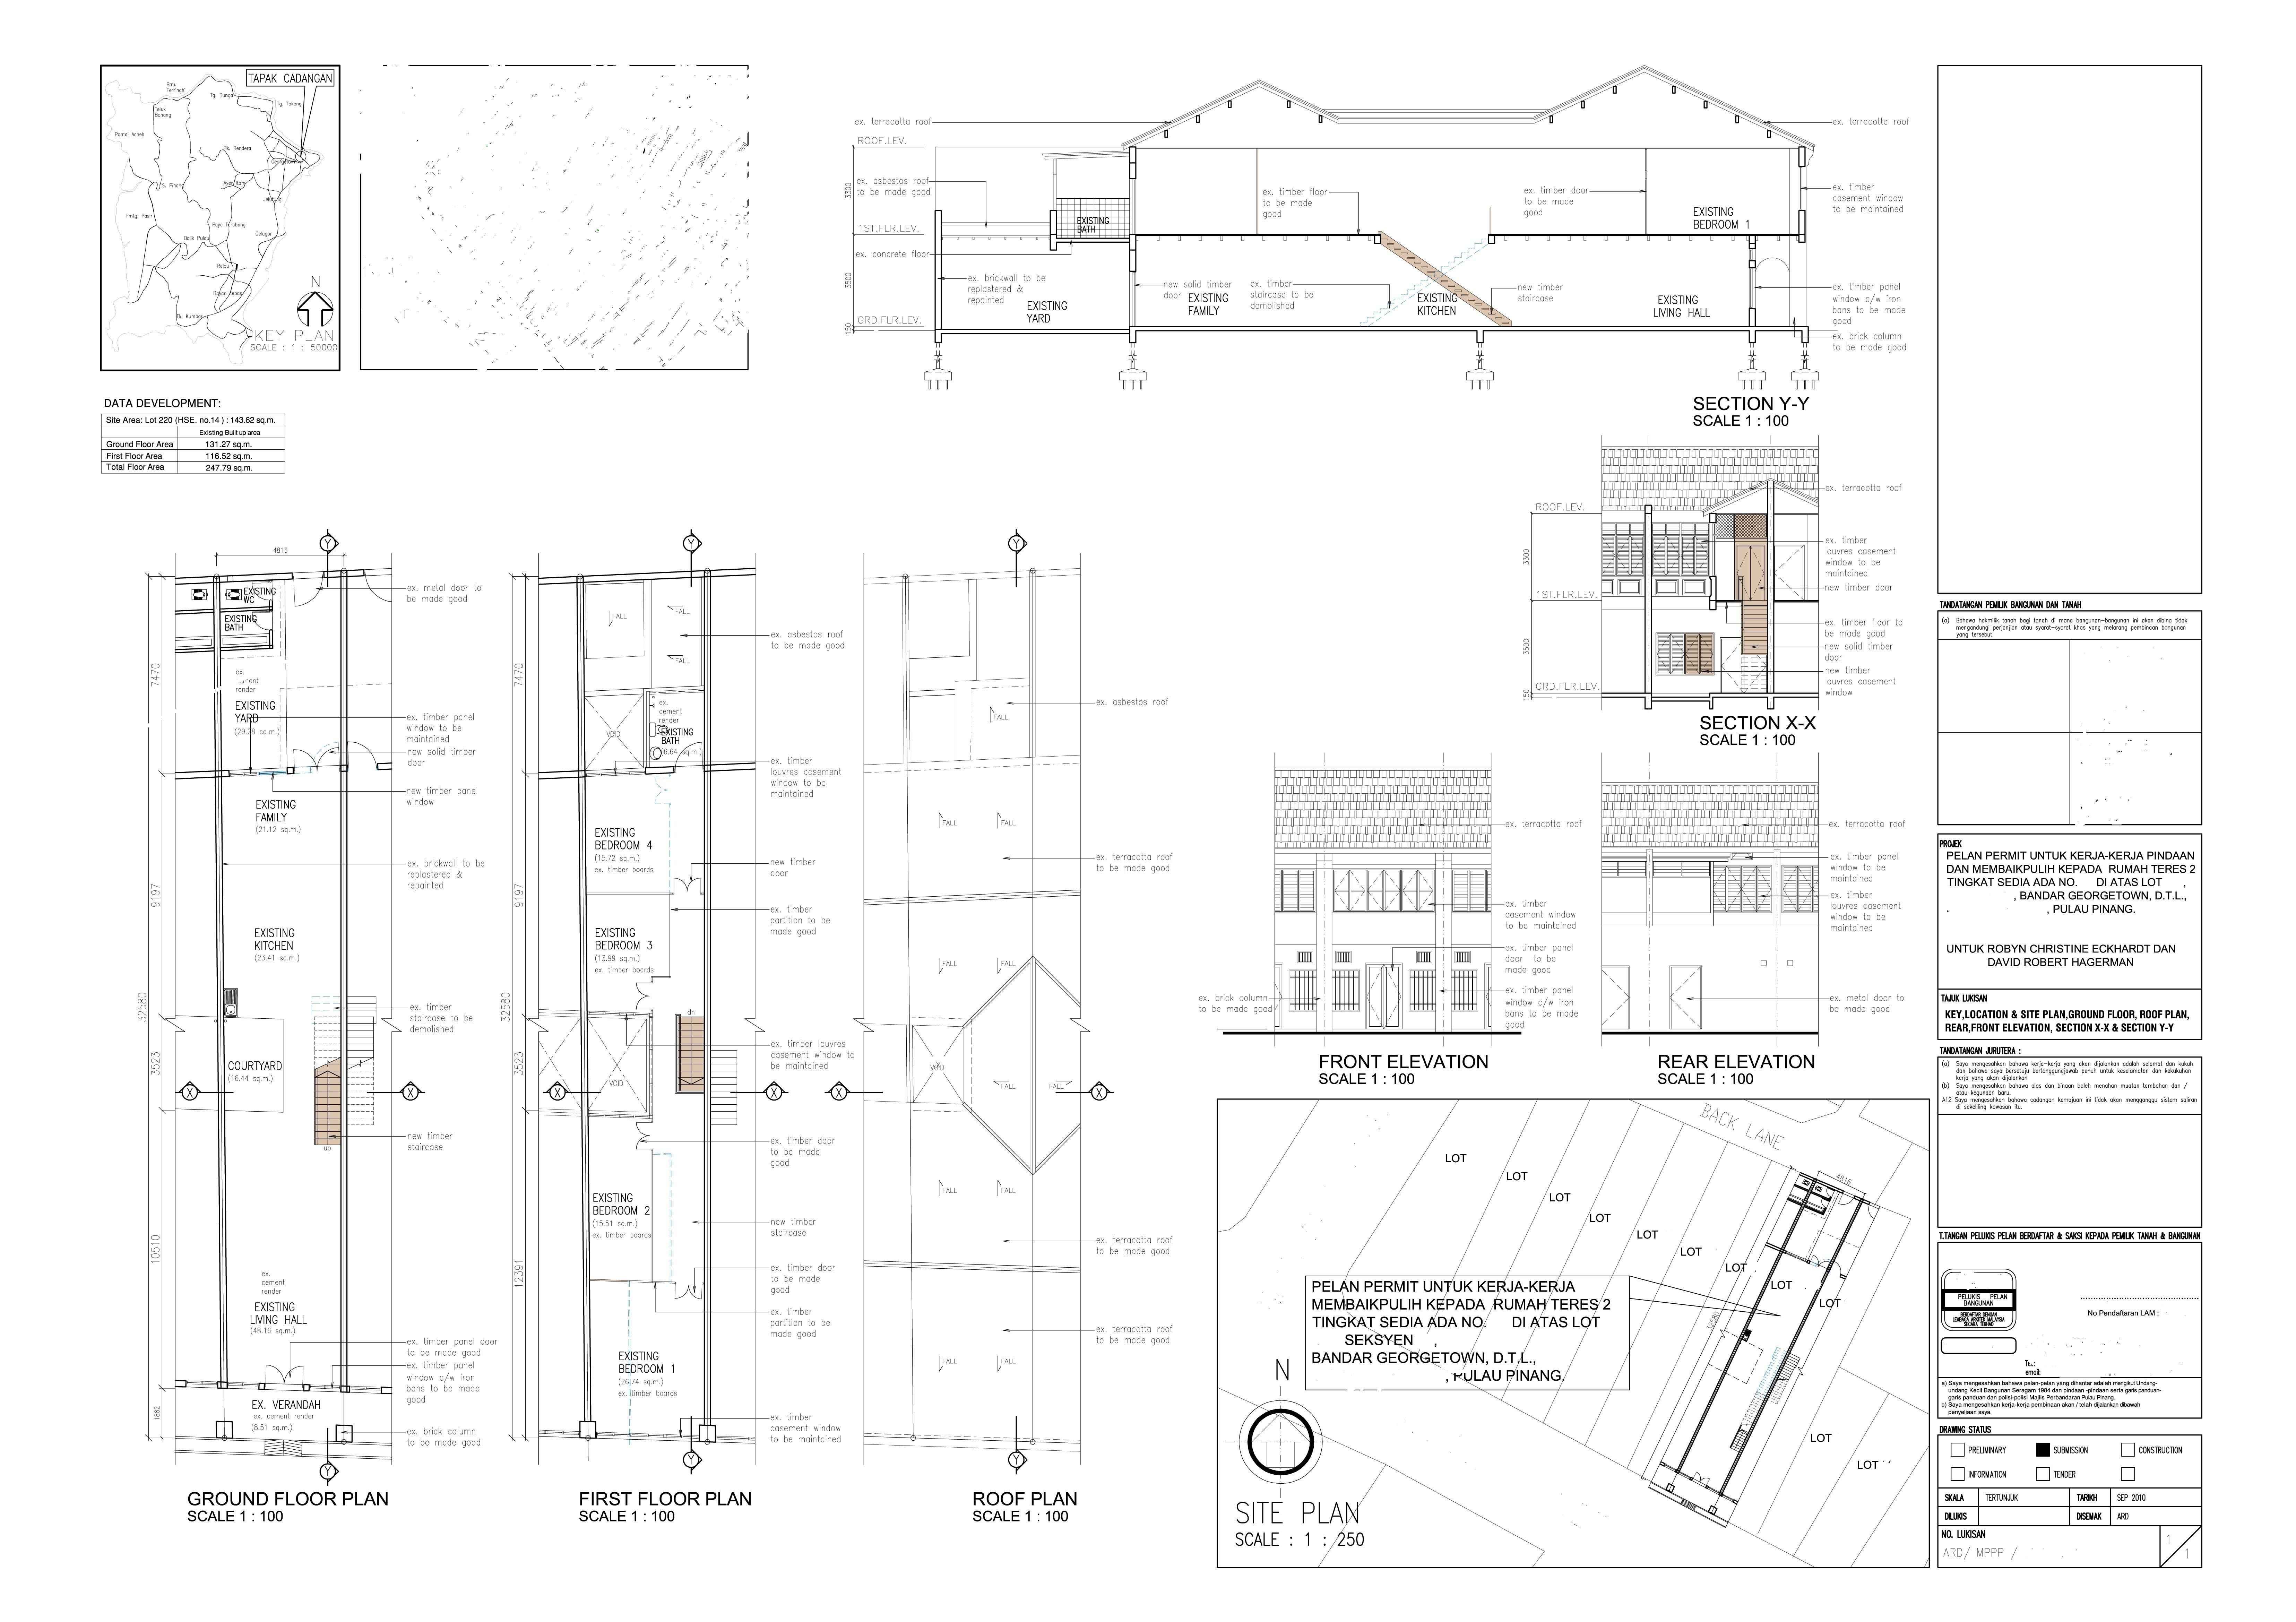 Rcedrhpenanghouseplans cleang 66224678 shophouses rcedrhpenanghouseplans cleang 66224678 malvernweather Image collections